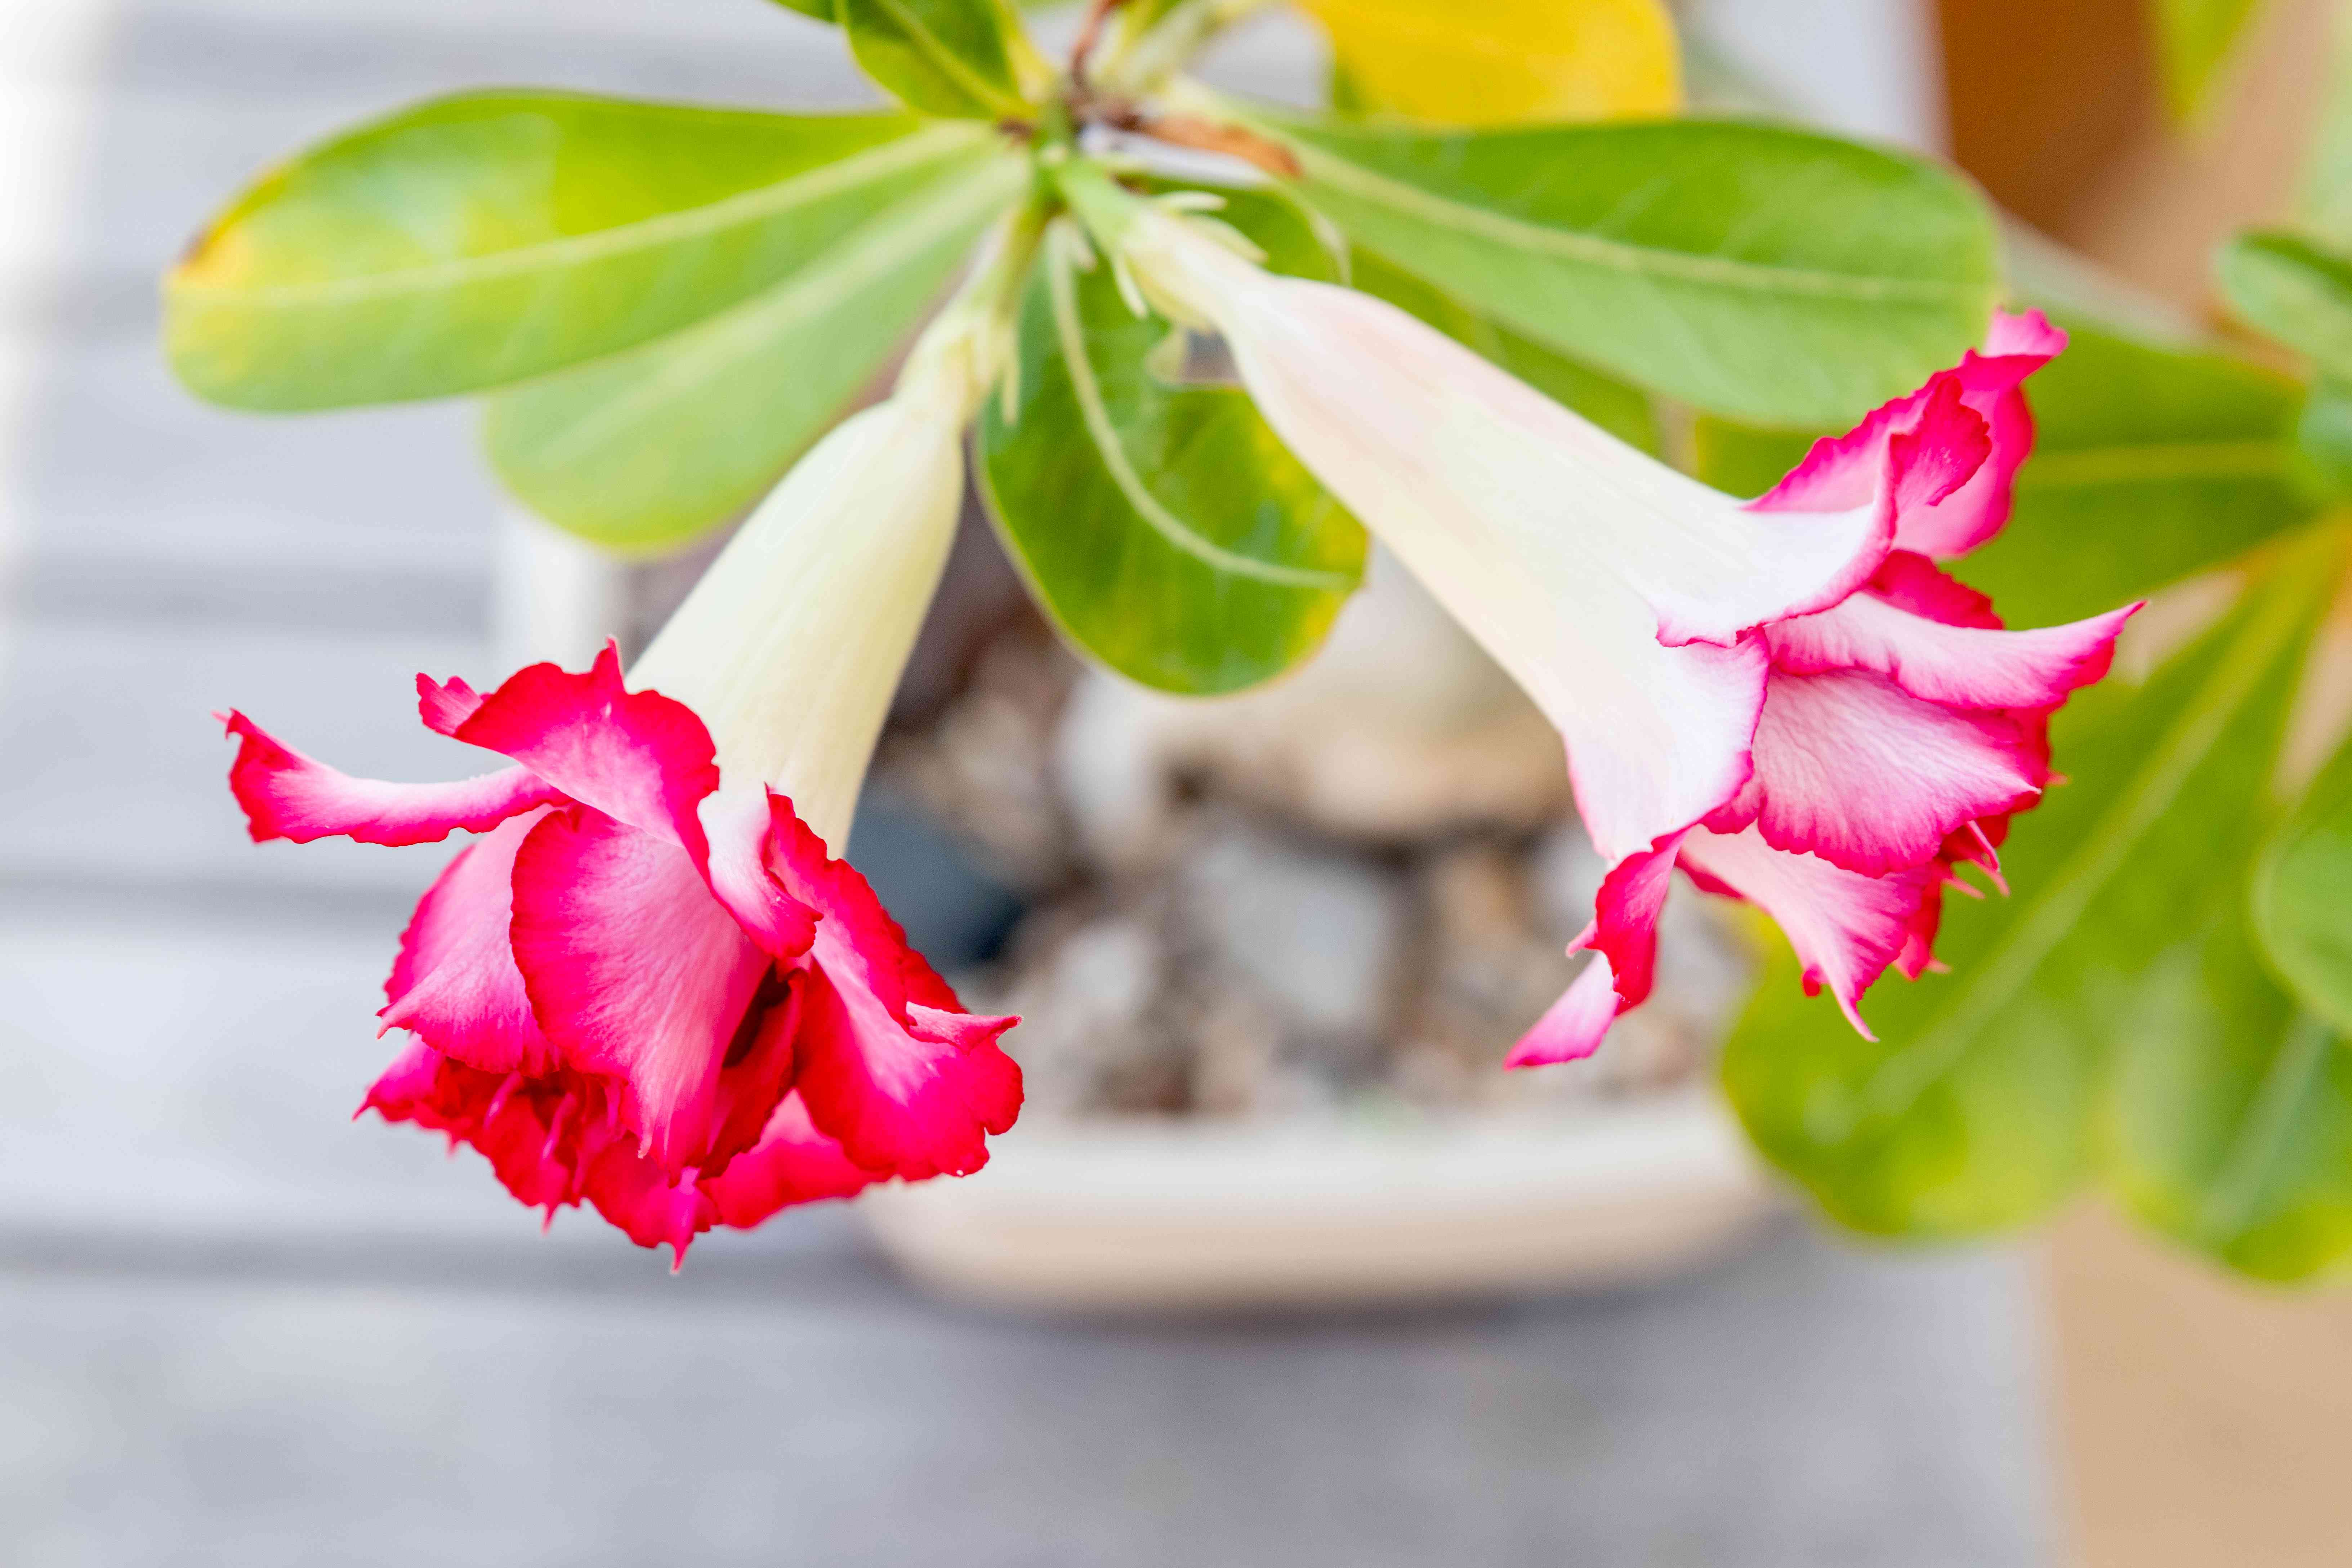 Desert rose plant with deep and light pink flowers hanging on end of stem with leaves closeup